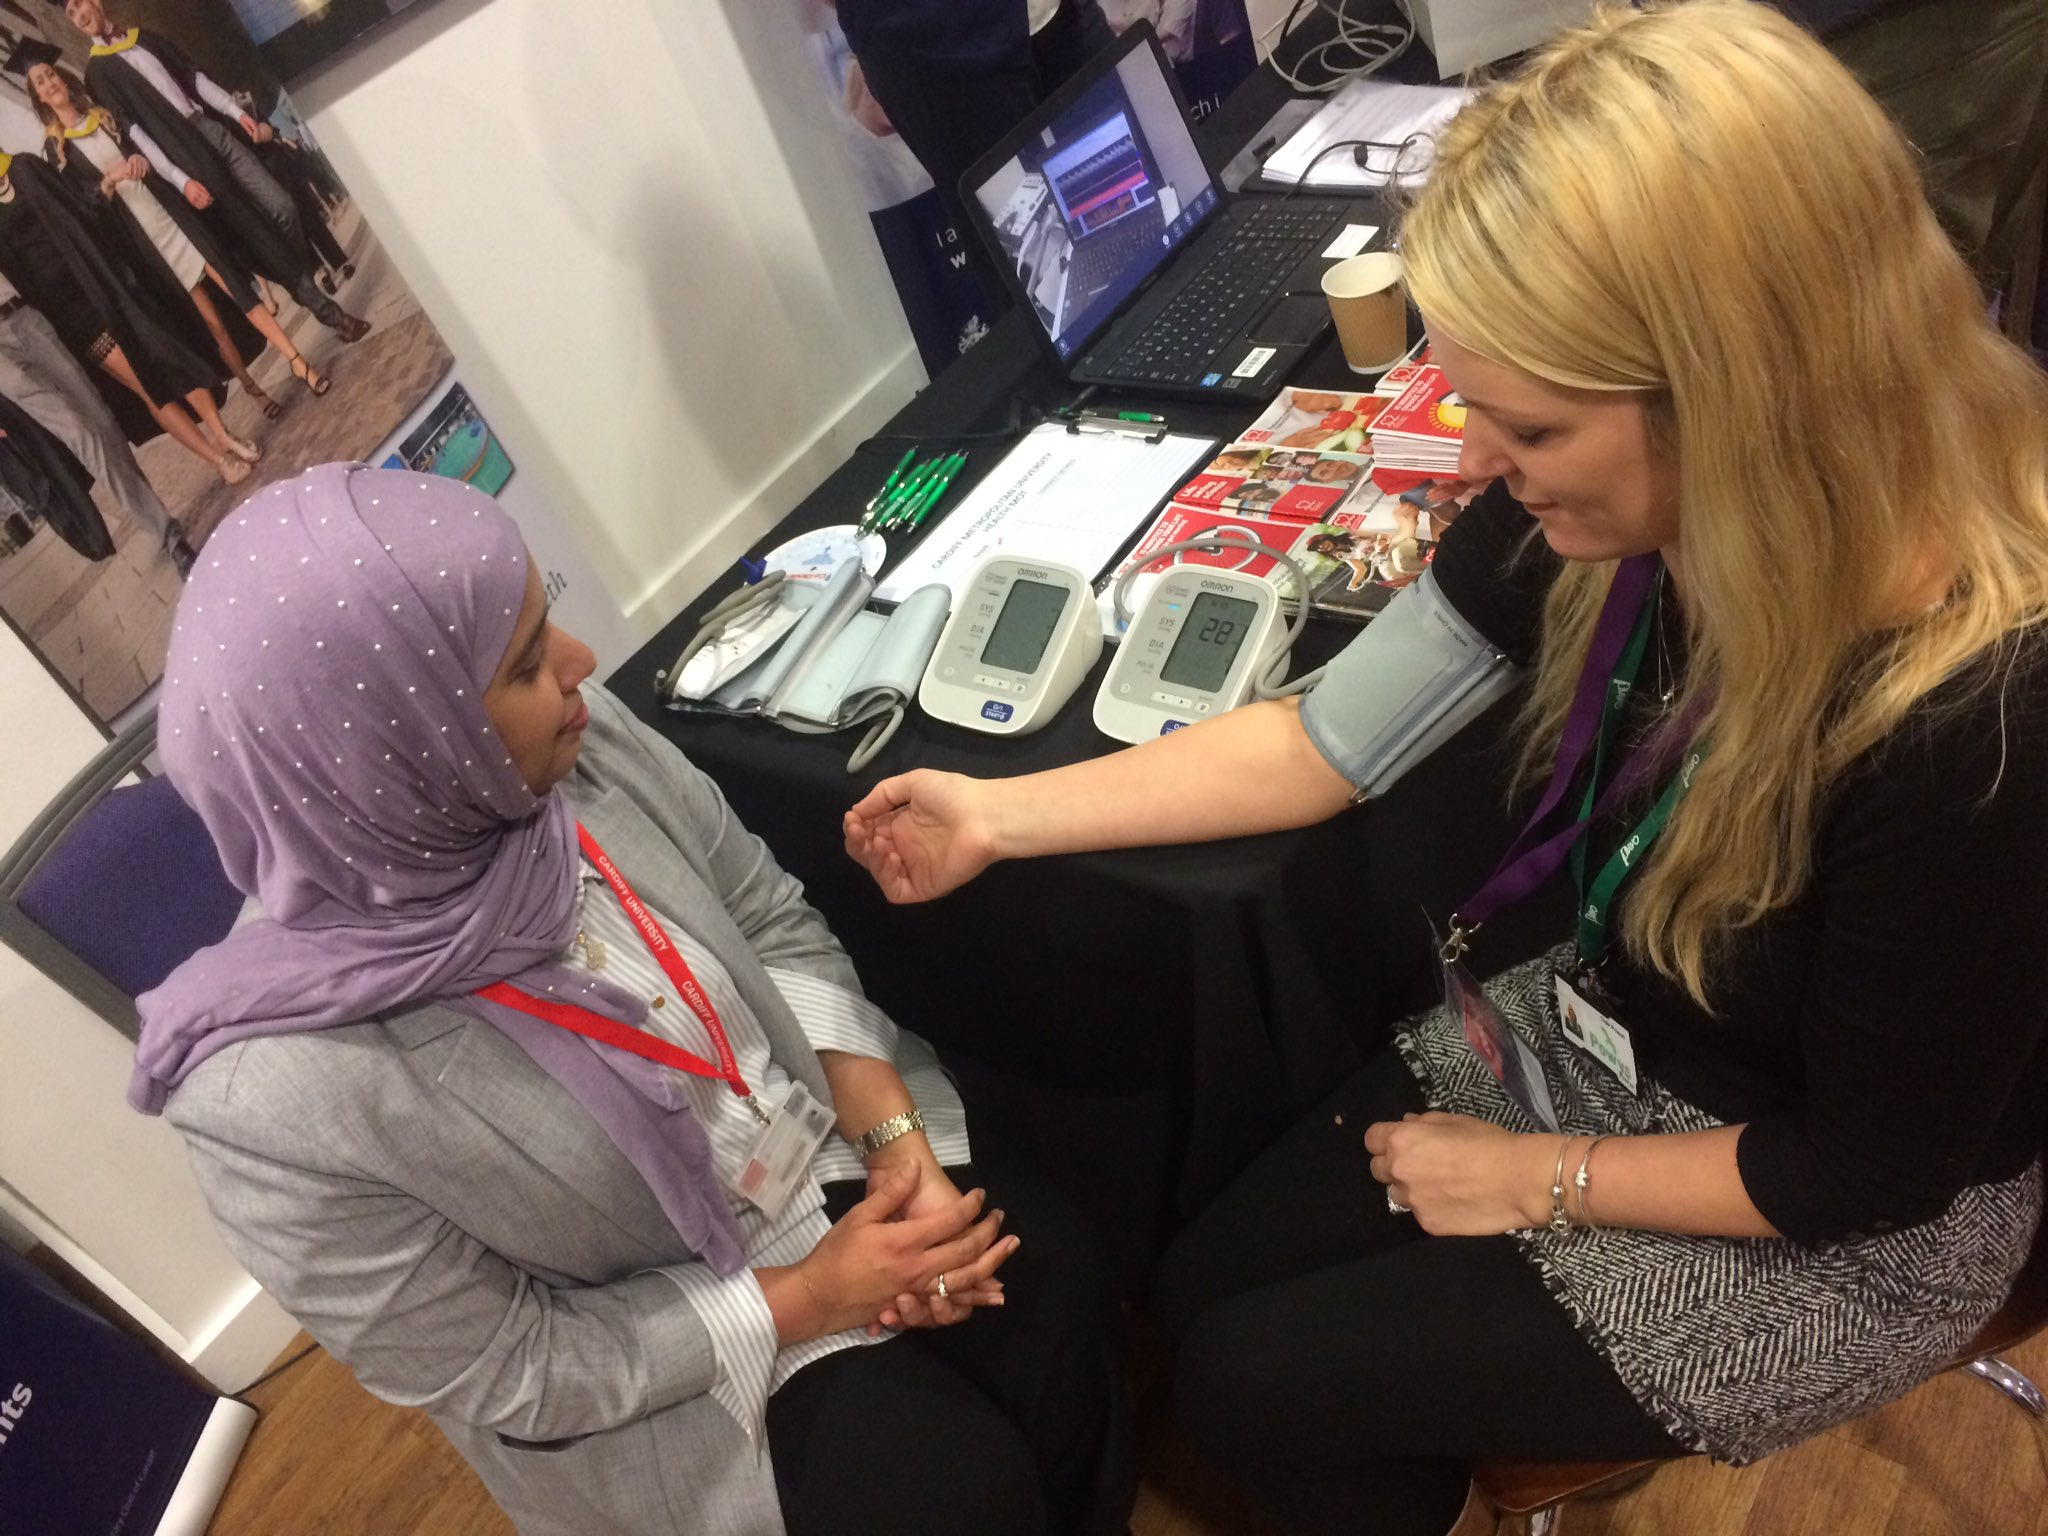 Getting my free health check from Cardiff School of Health Sciences #gofod3 @PAVOtweets https://t.co/ioAEjMW73L